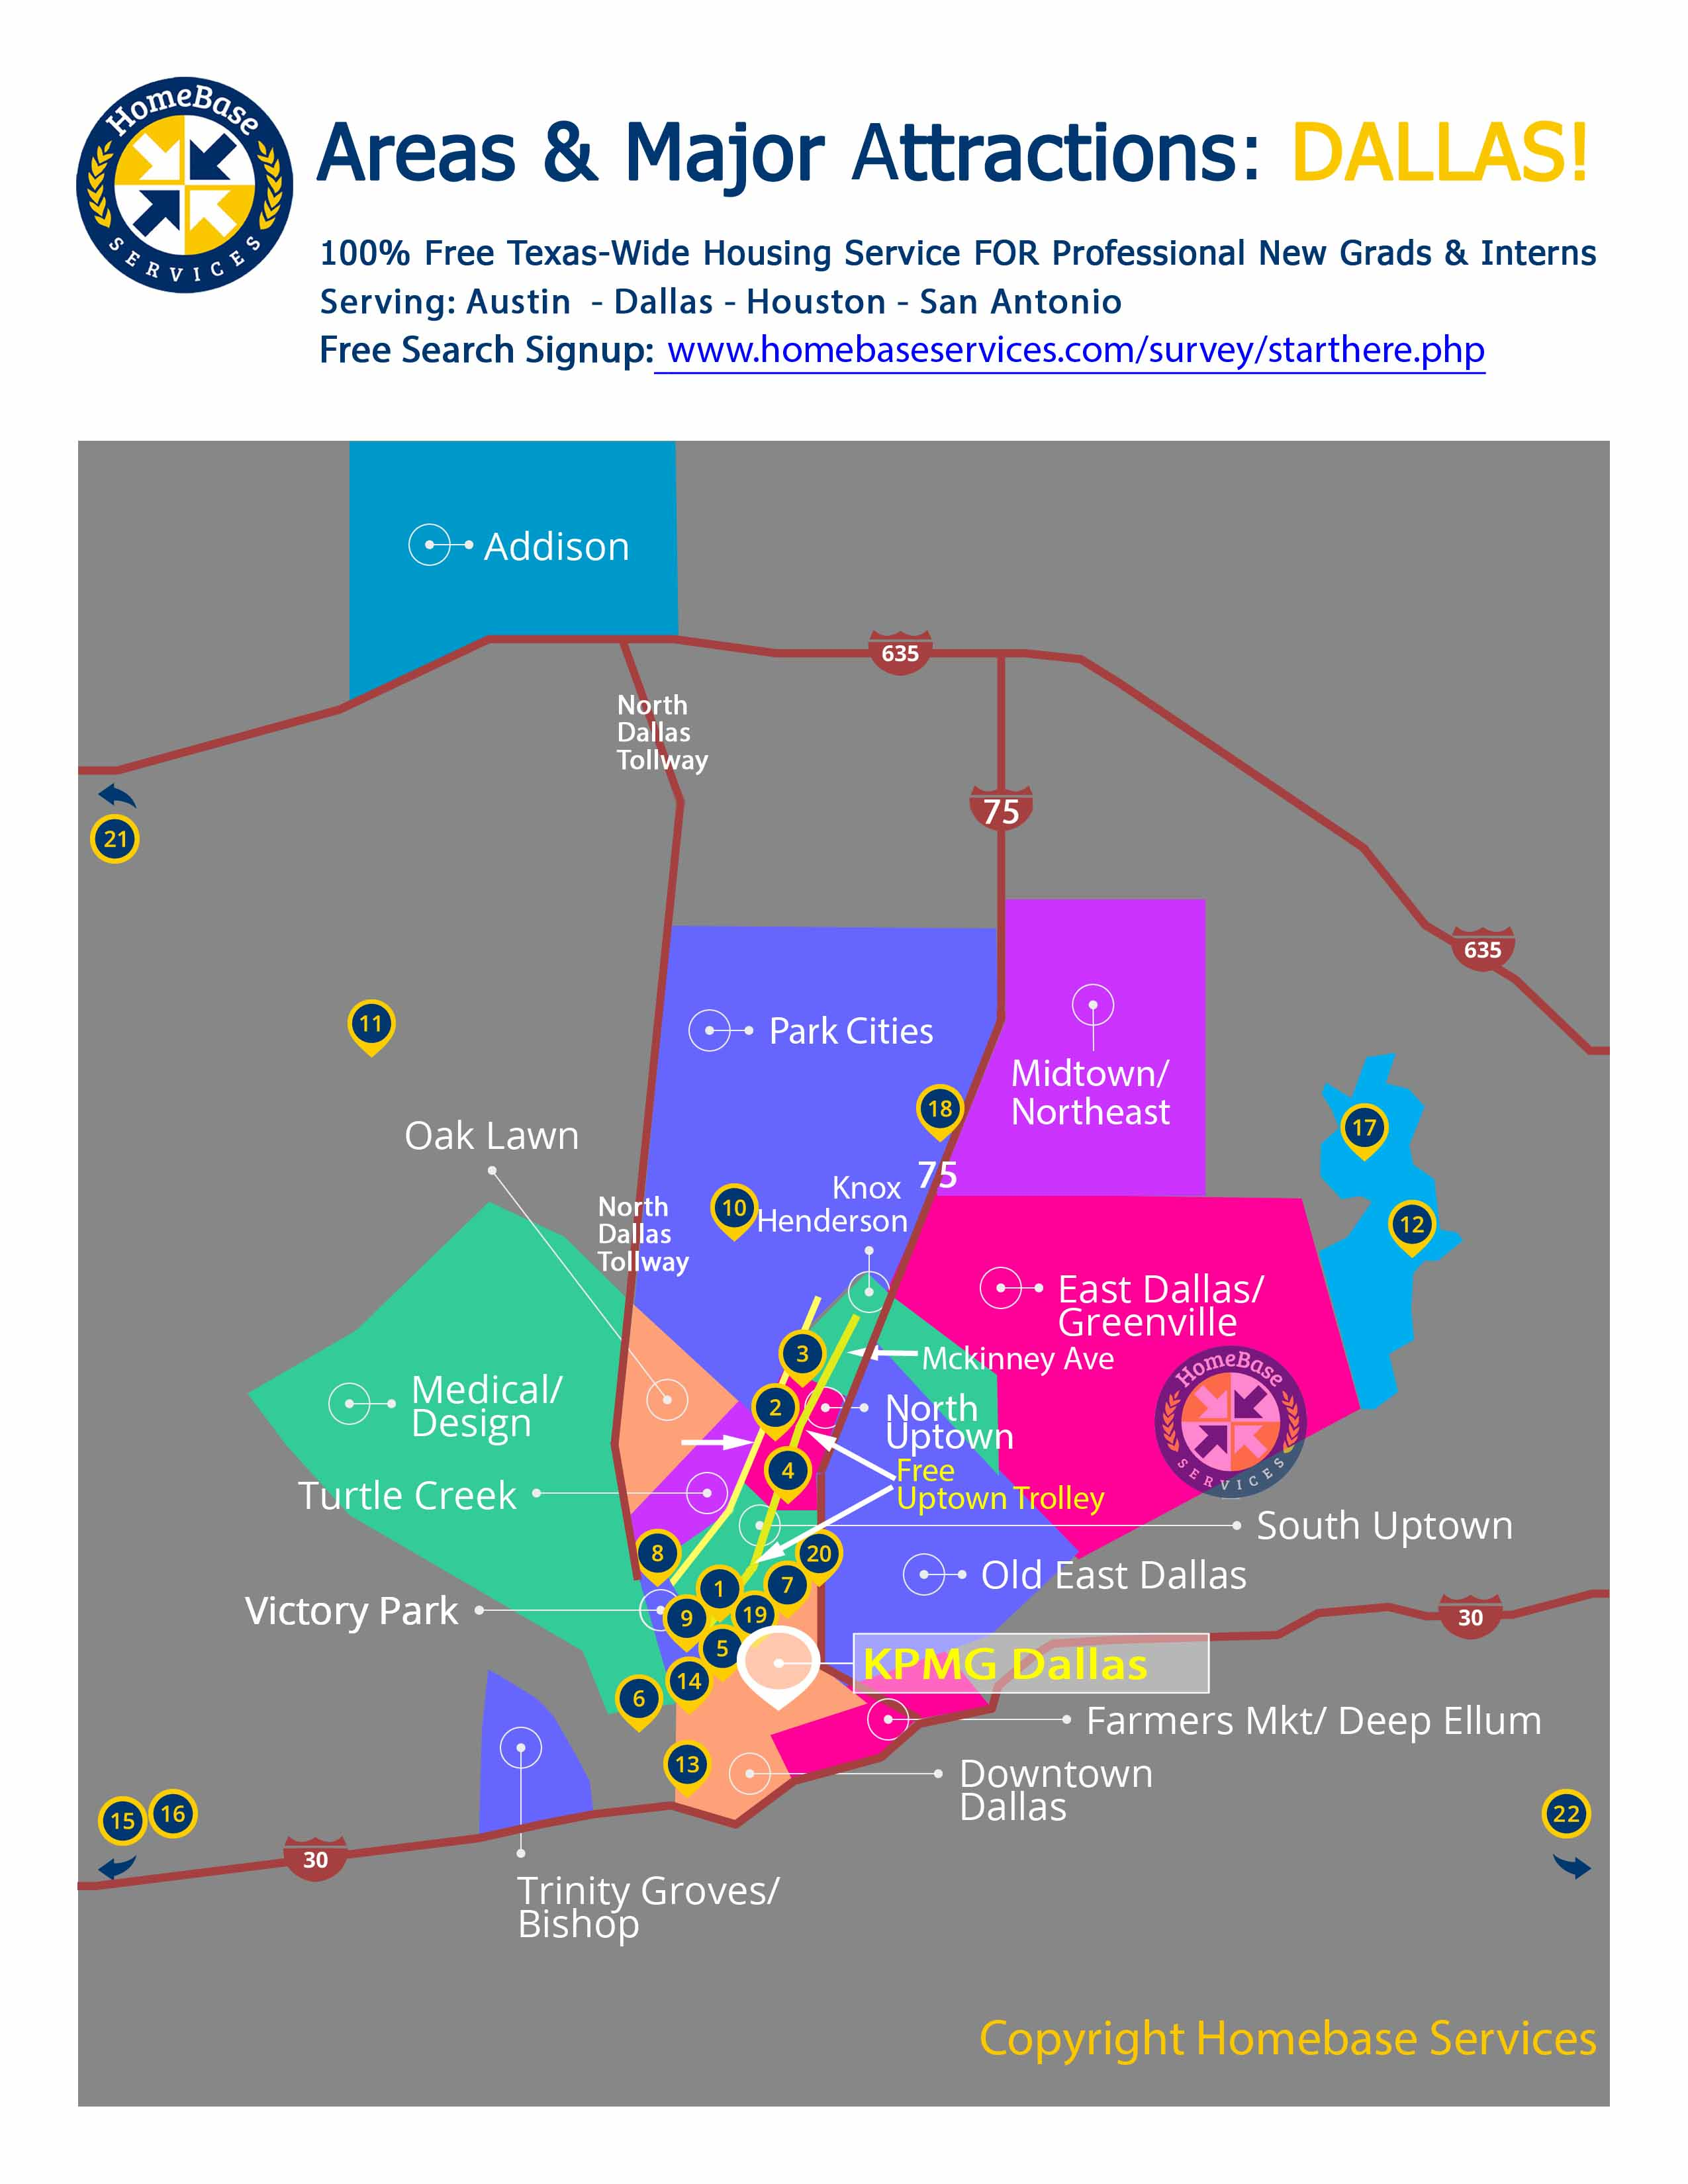 kpmg dallas area and attractions map